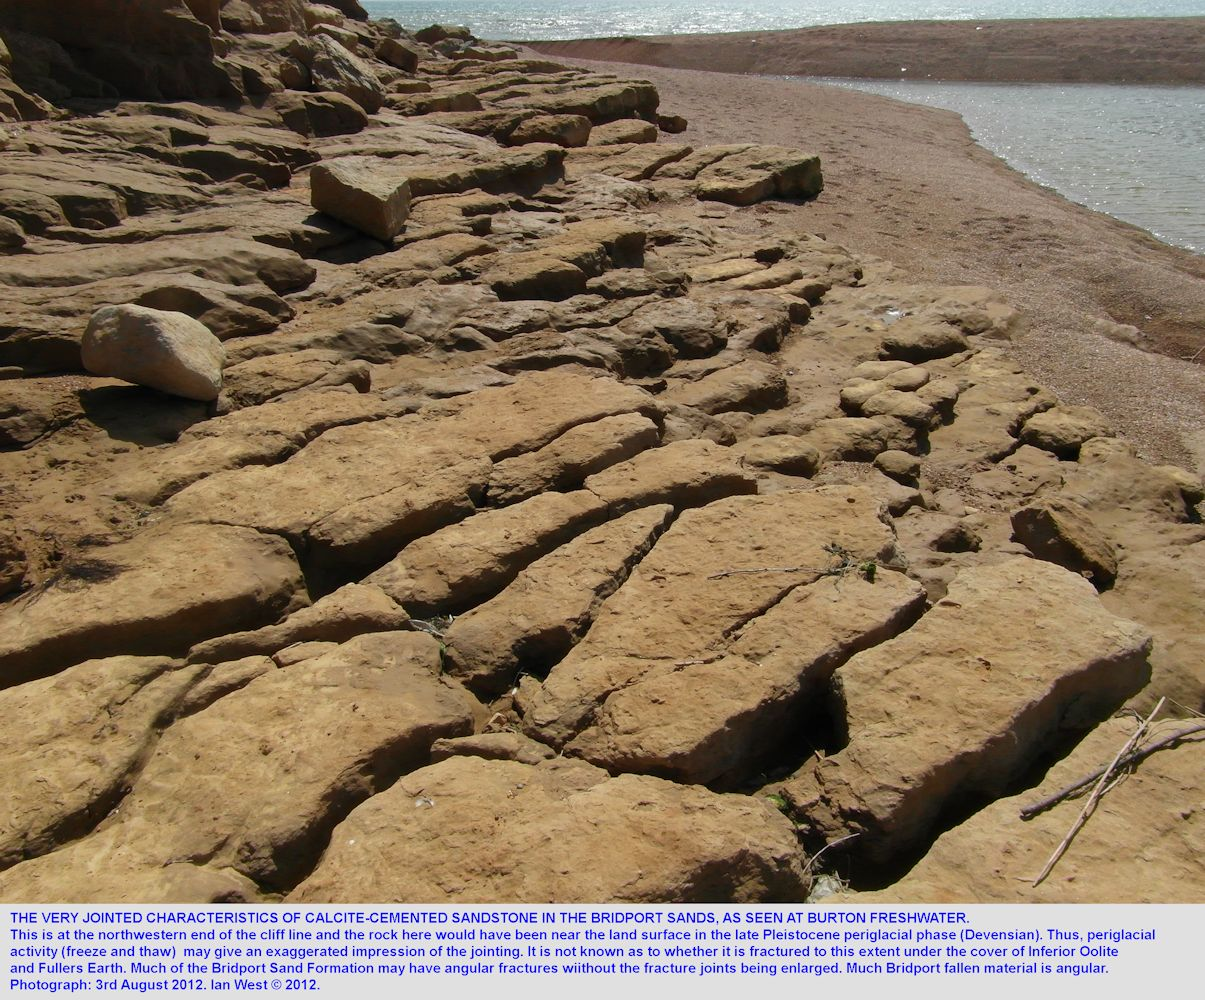 Widened joints in calcite-cemented beds at Burton Freshwater, Burton Bradstock, Dorset, 3rd August 2012